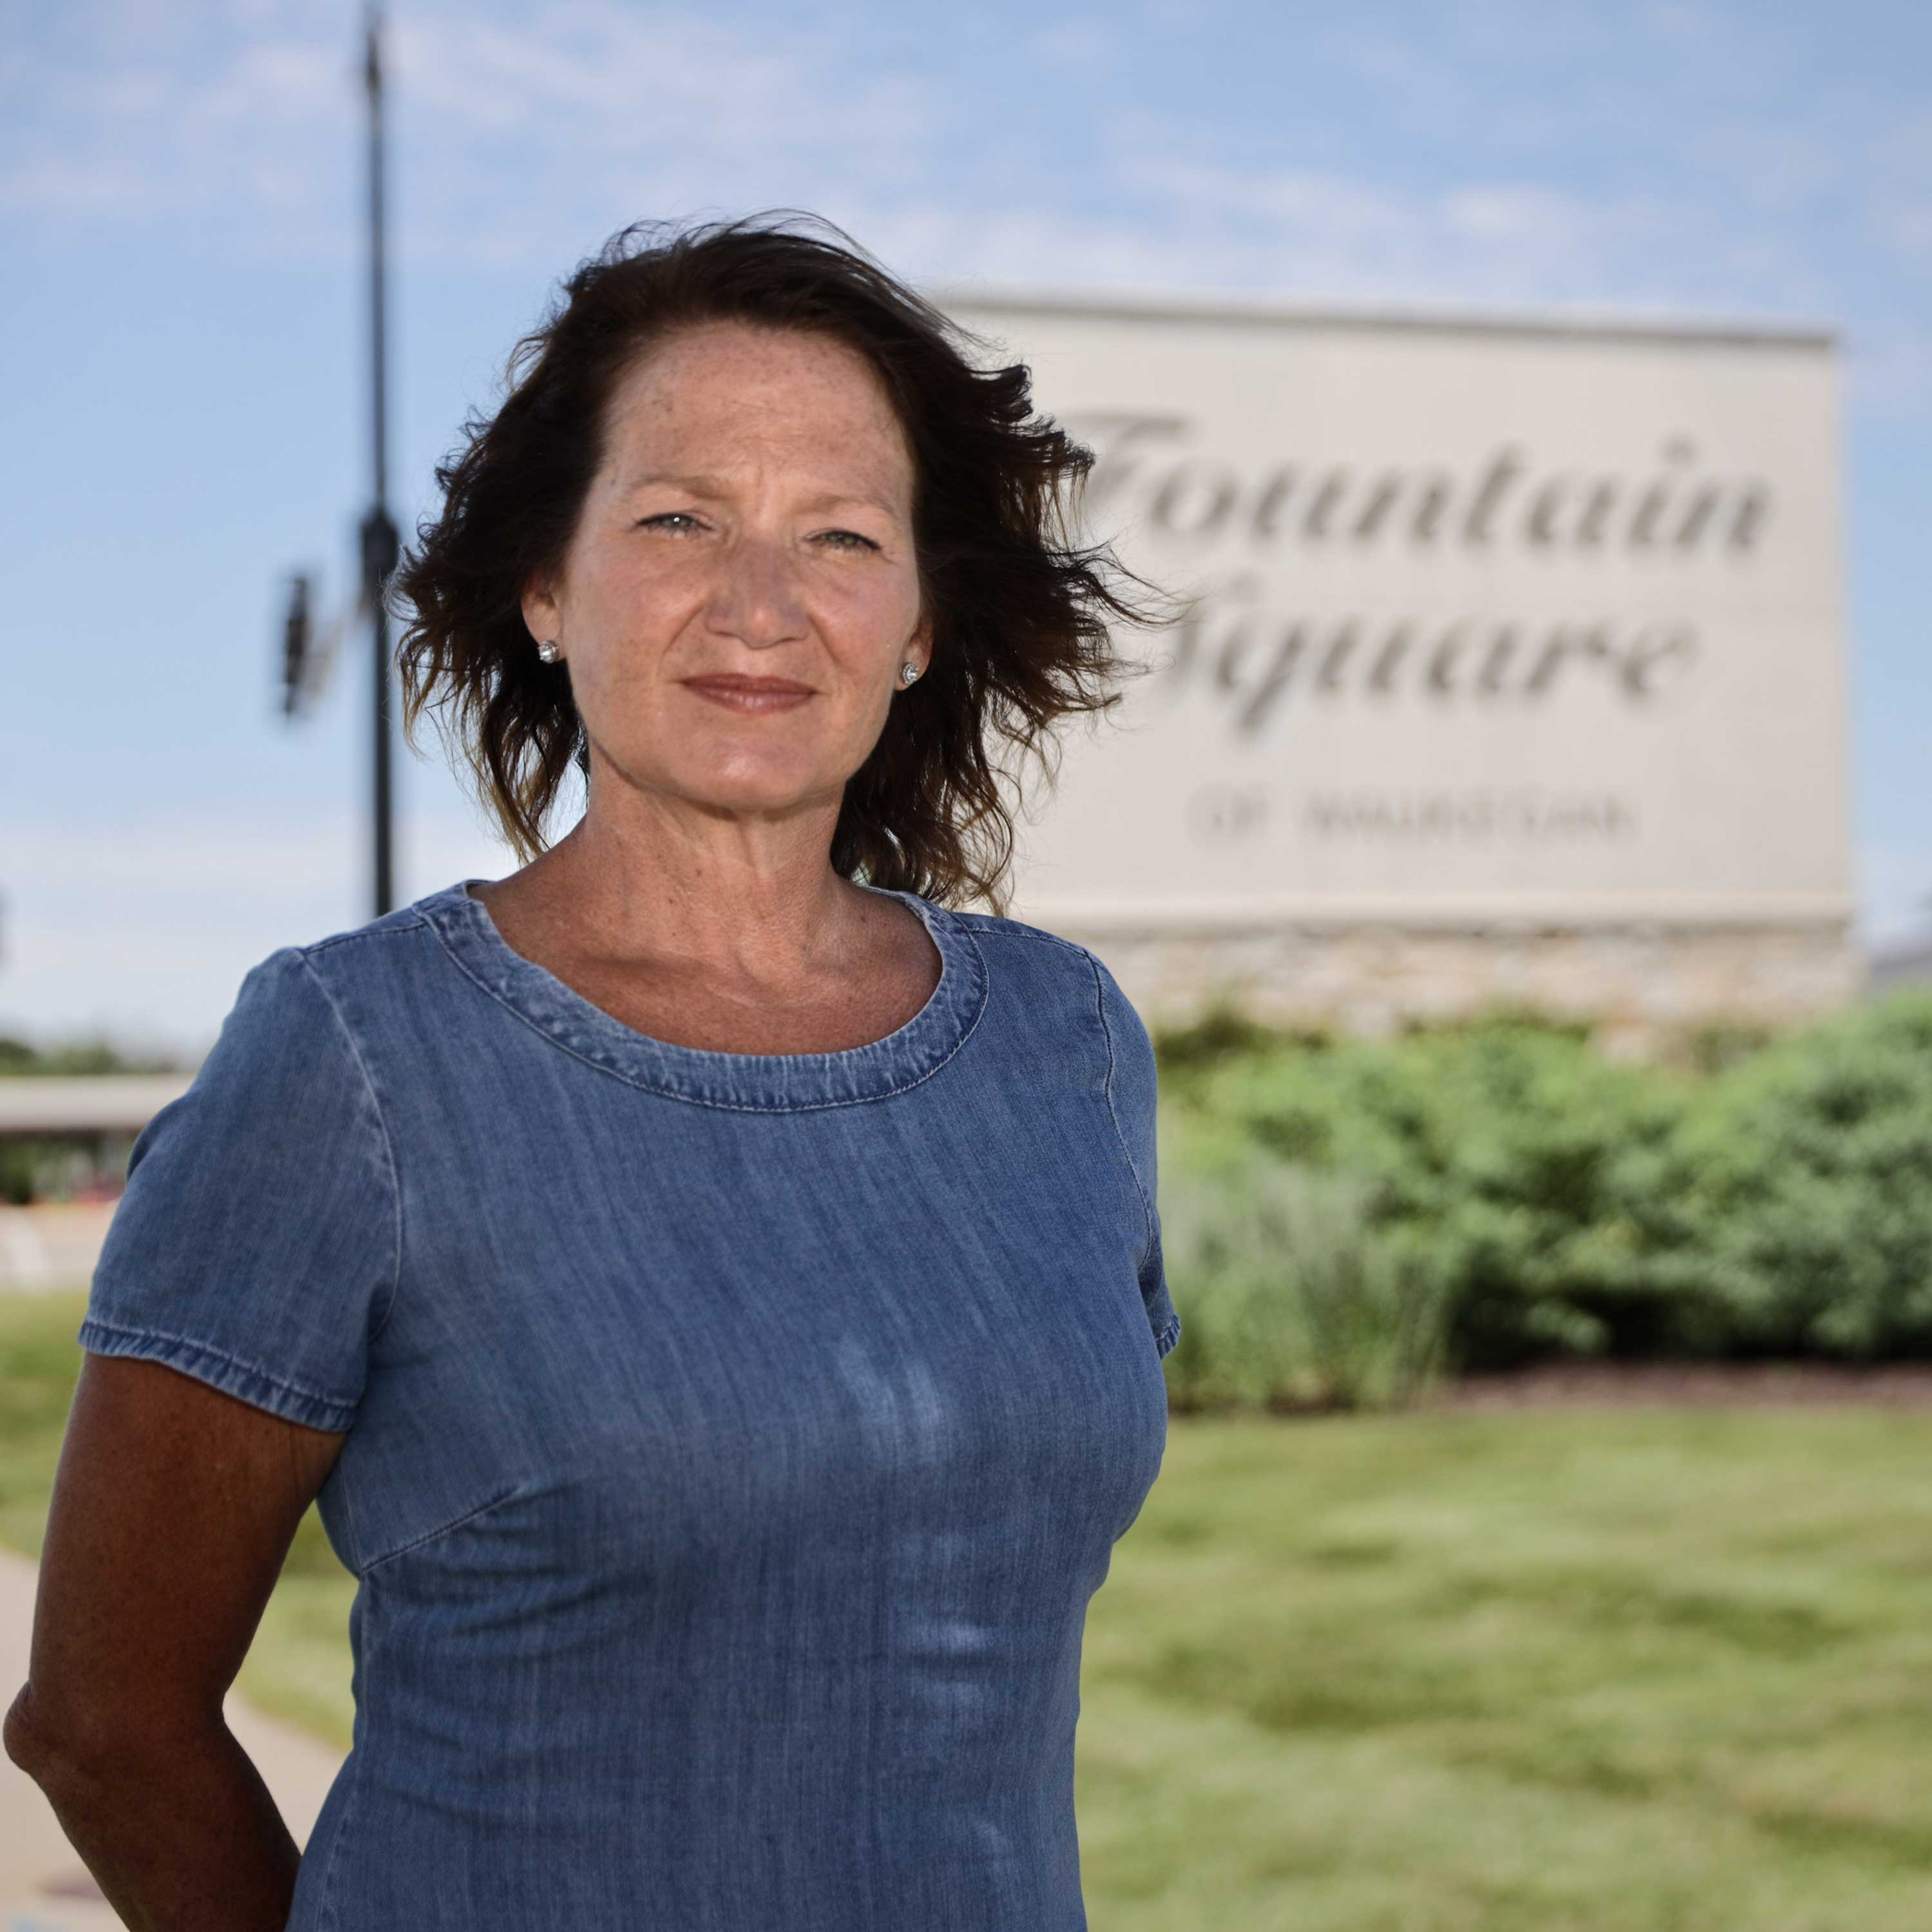 Lisa May, former Waukegan 7th Ward Alderman and former mayoral candidate, at Fountain Square of Waukegan mall, which is across from a possible casino site.